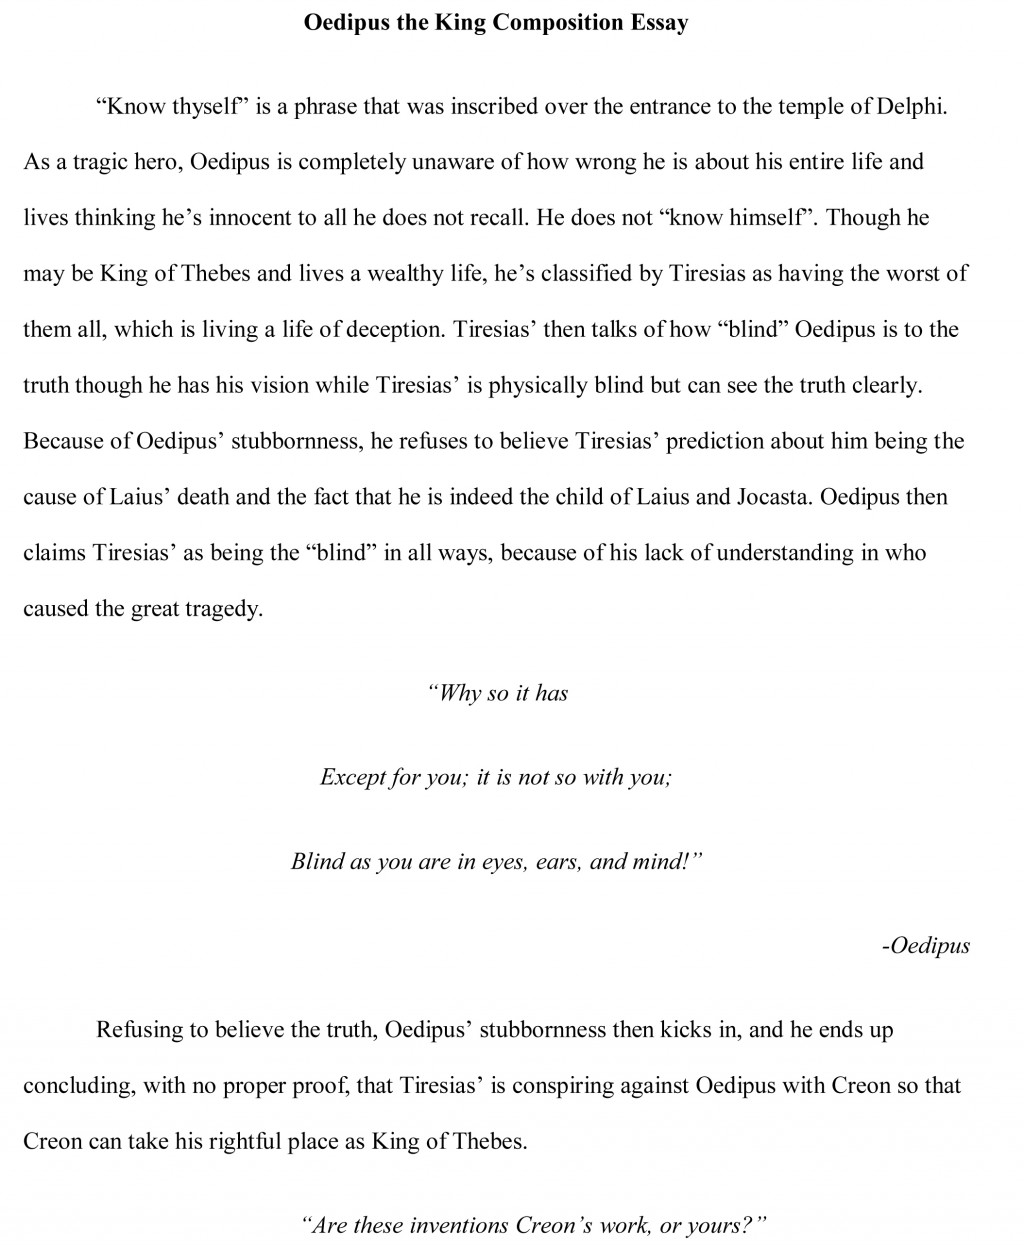 009 Oedipus Essay Free Sample Example Buy Magnificent Papers Large